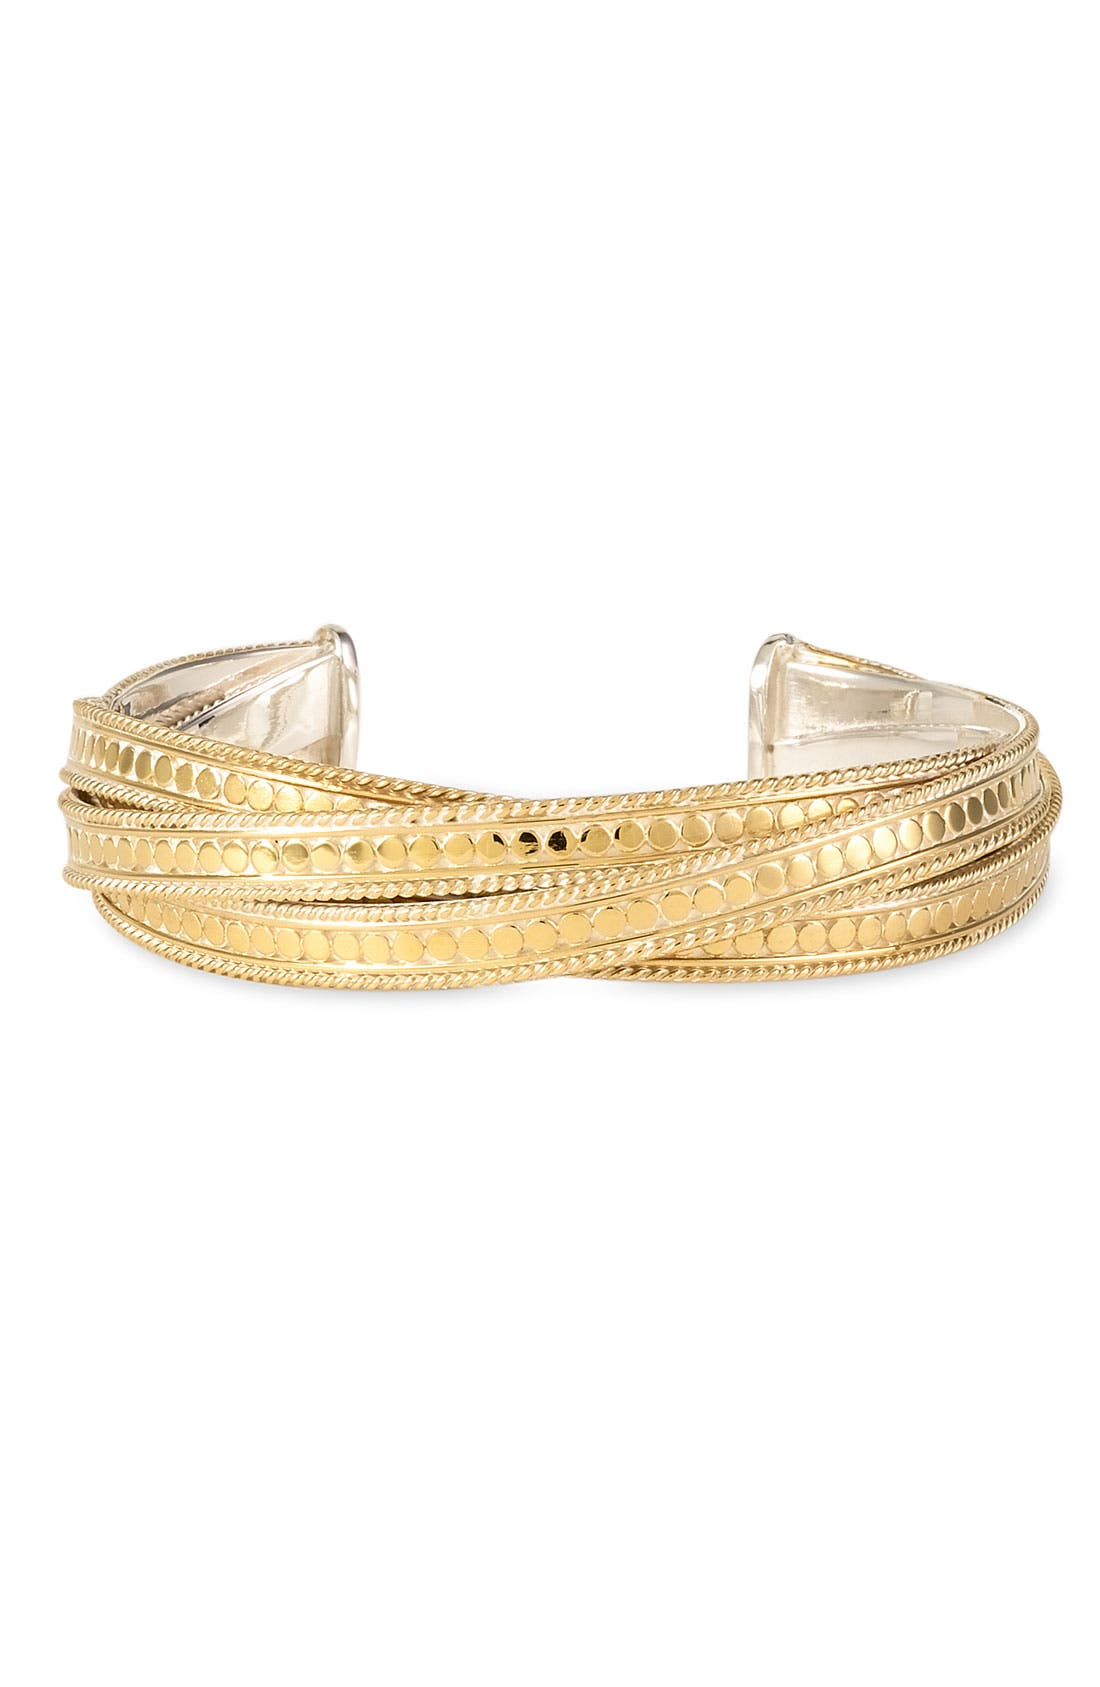 Alternate Image 1 Selected - Anna Beck 'Timor' Wire Twist Cuff (Nordstrom Exclusive)